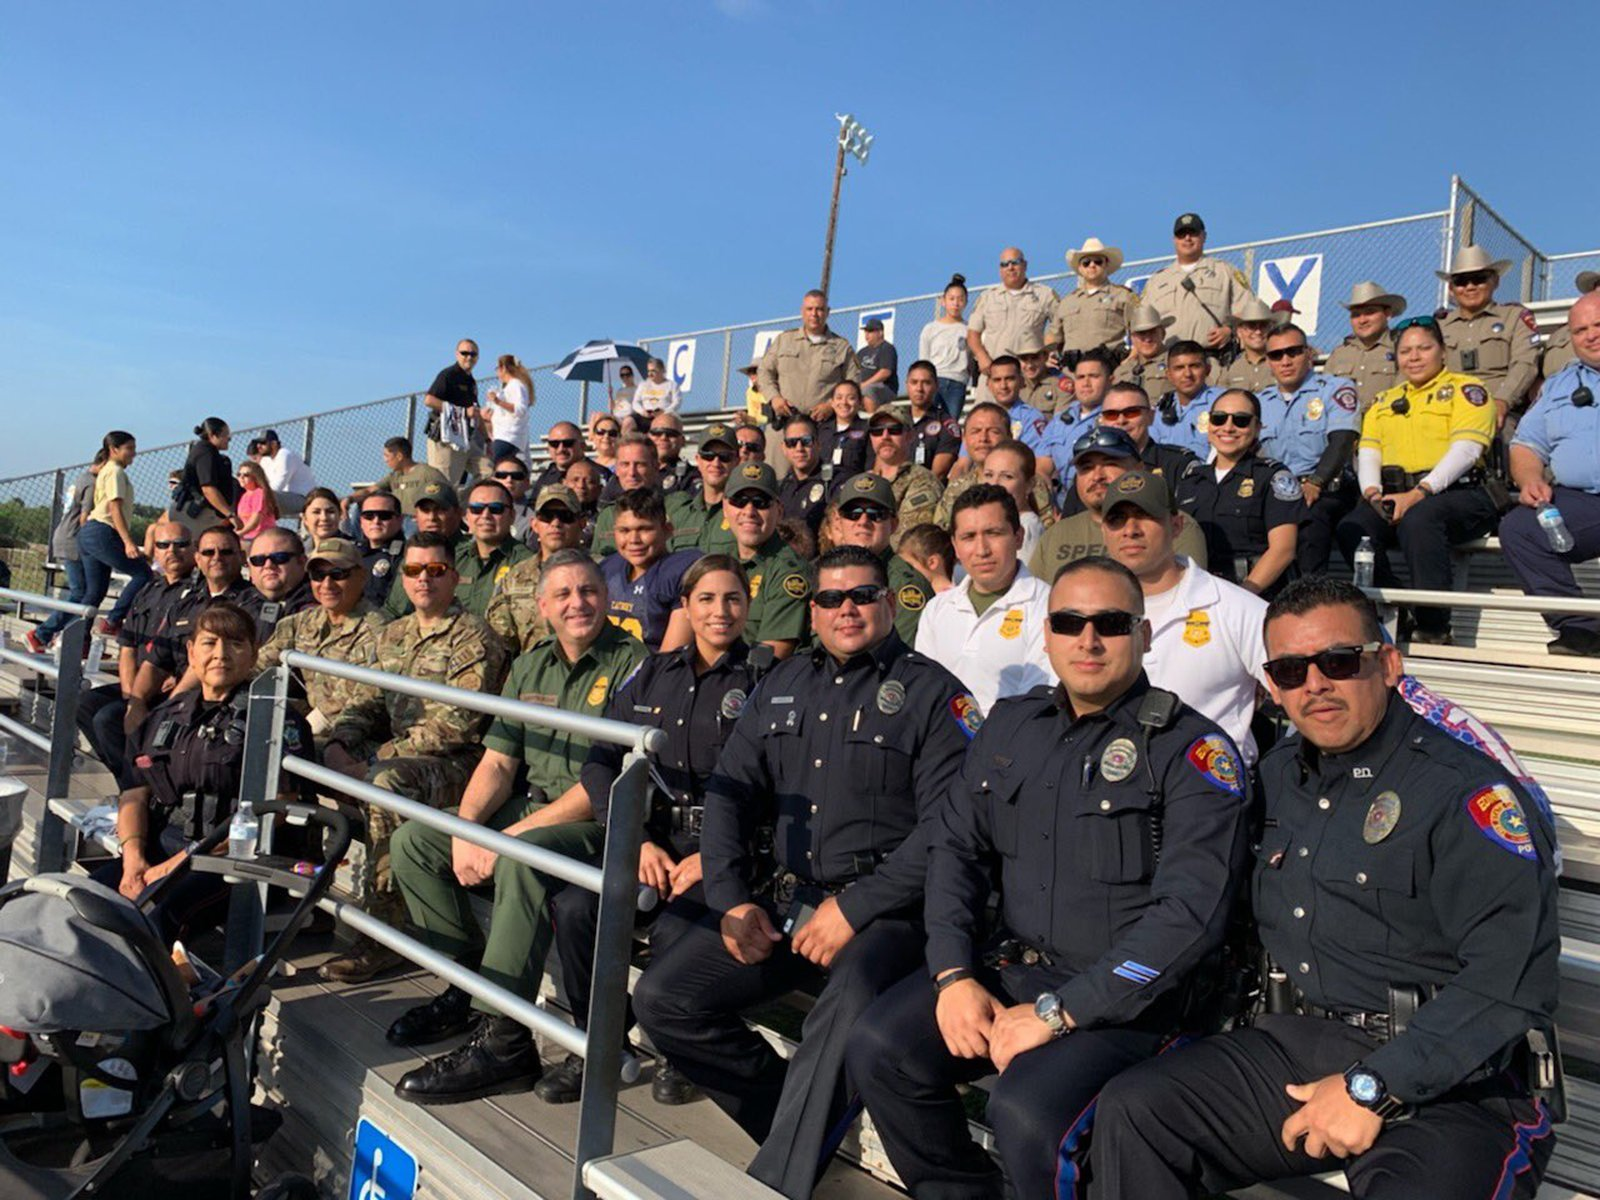 Joaquin's dad died in the line of duty, so dozens of police came to watch his first football game